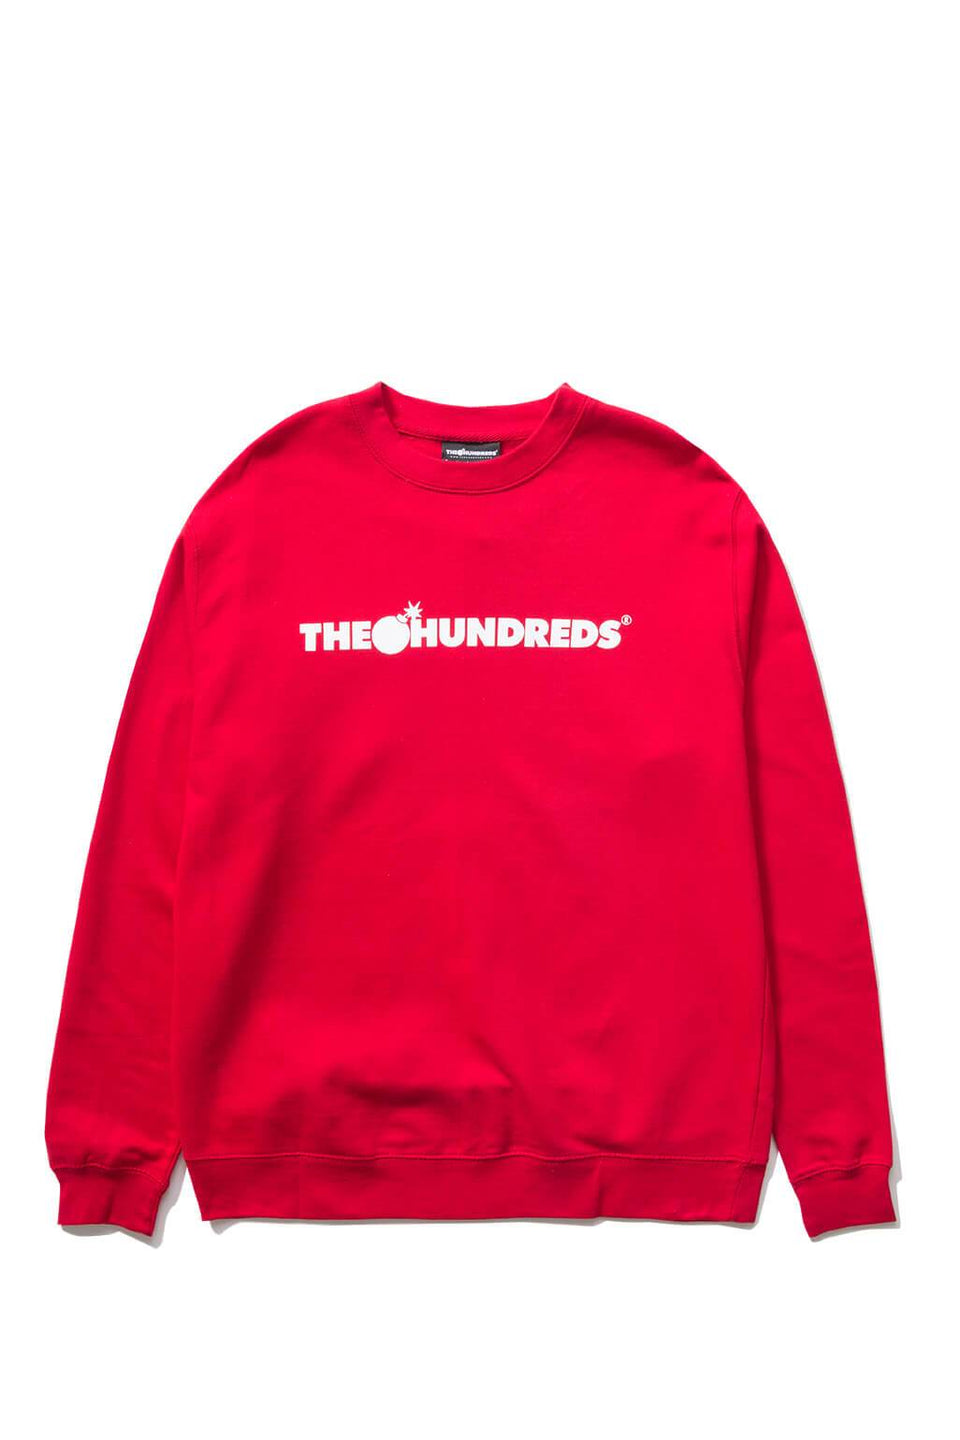 The Hundreds Forever Bar Crewneck Sweatshirt Red Front